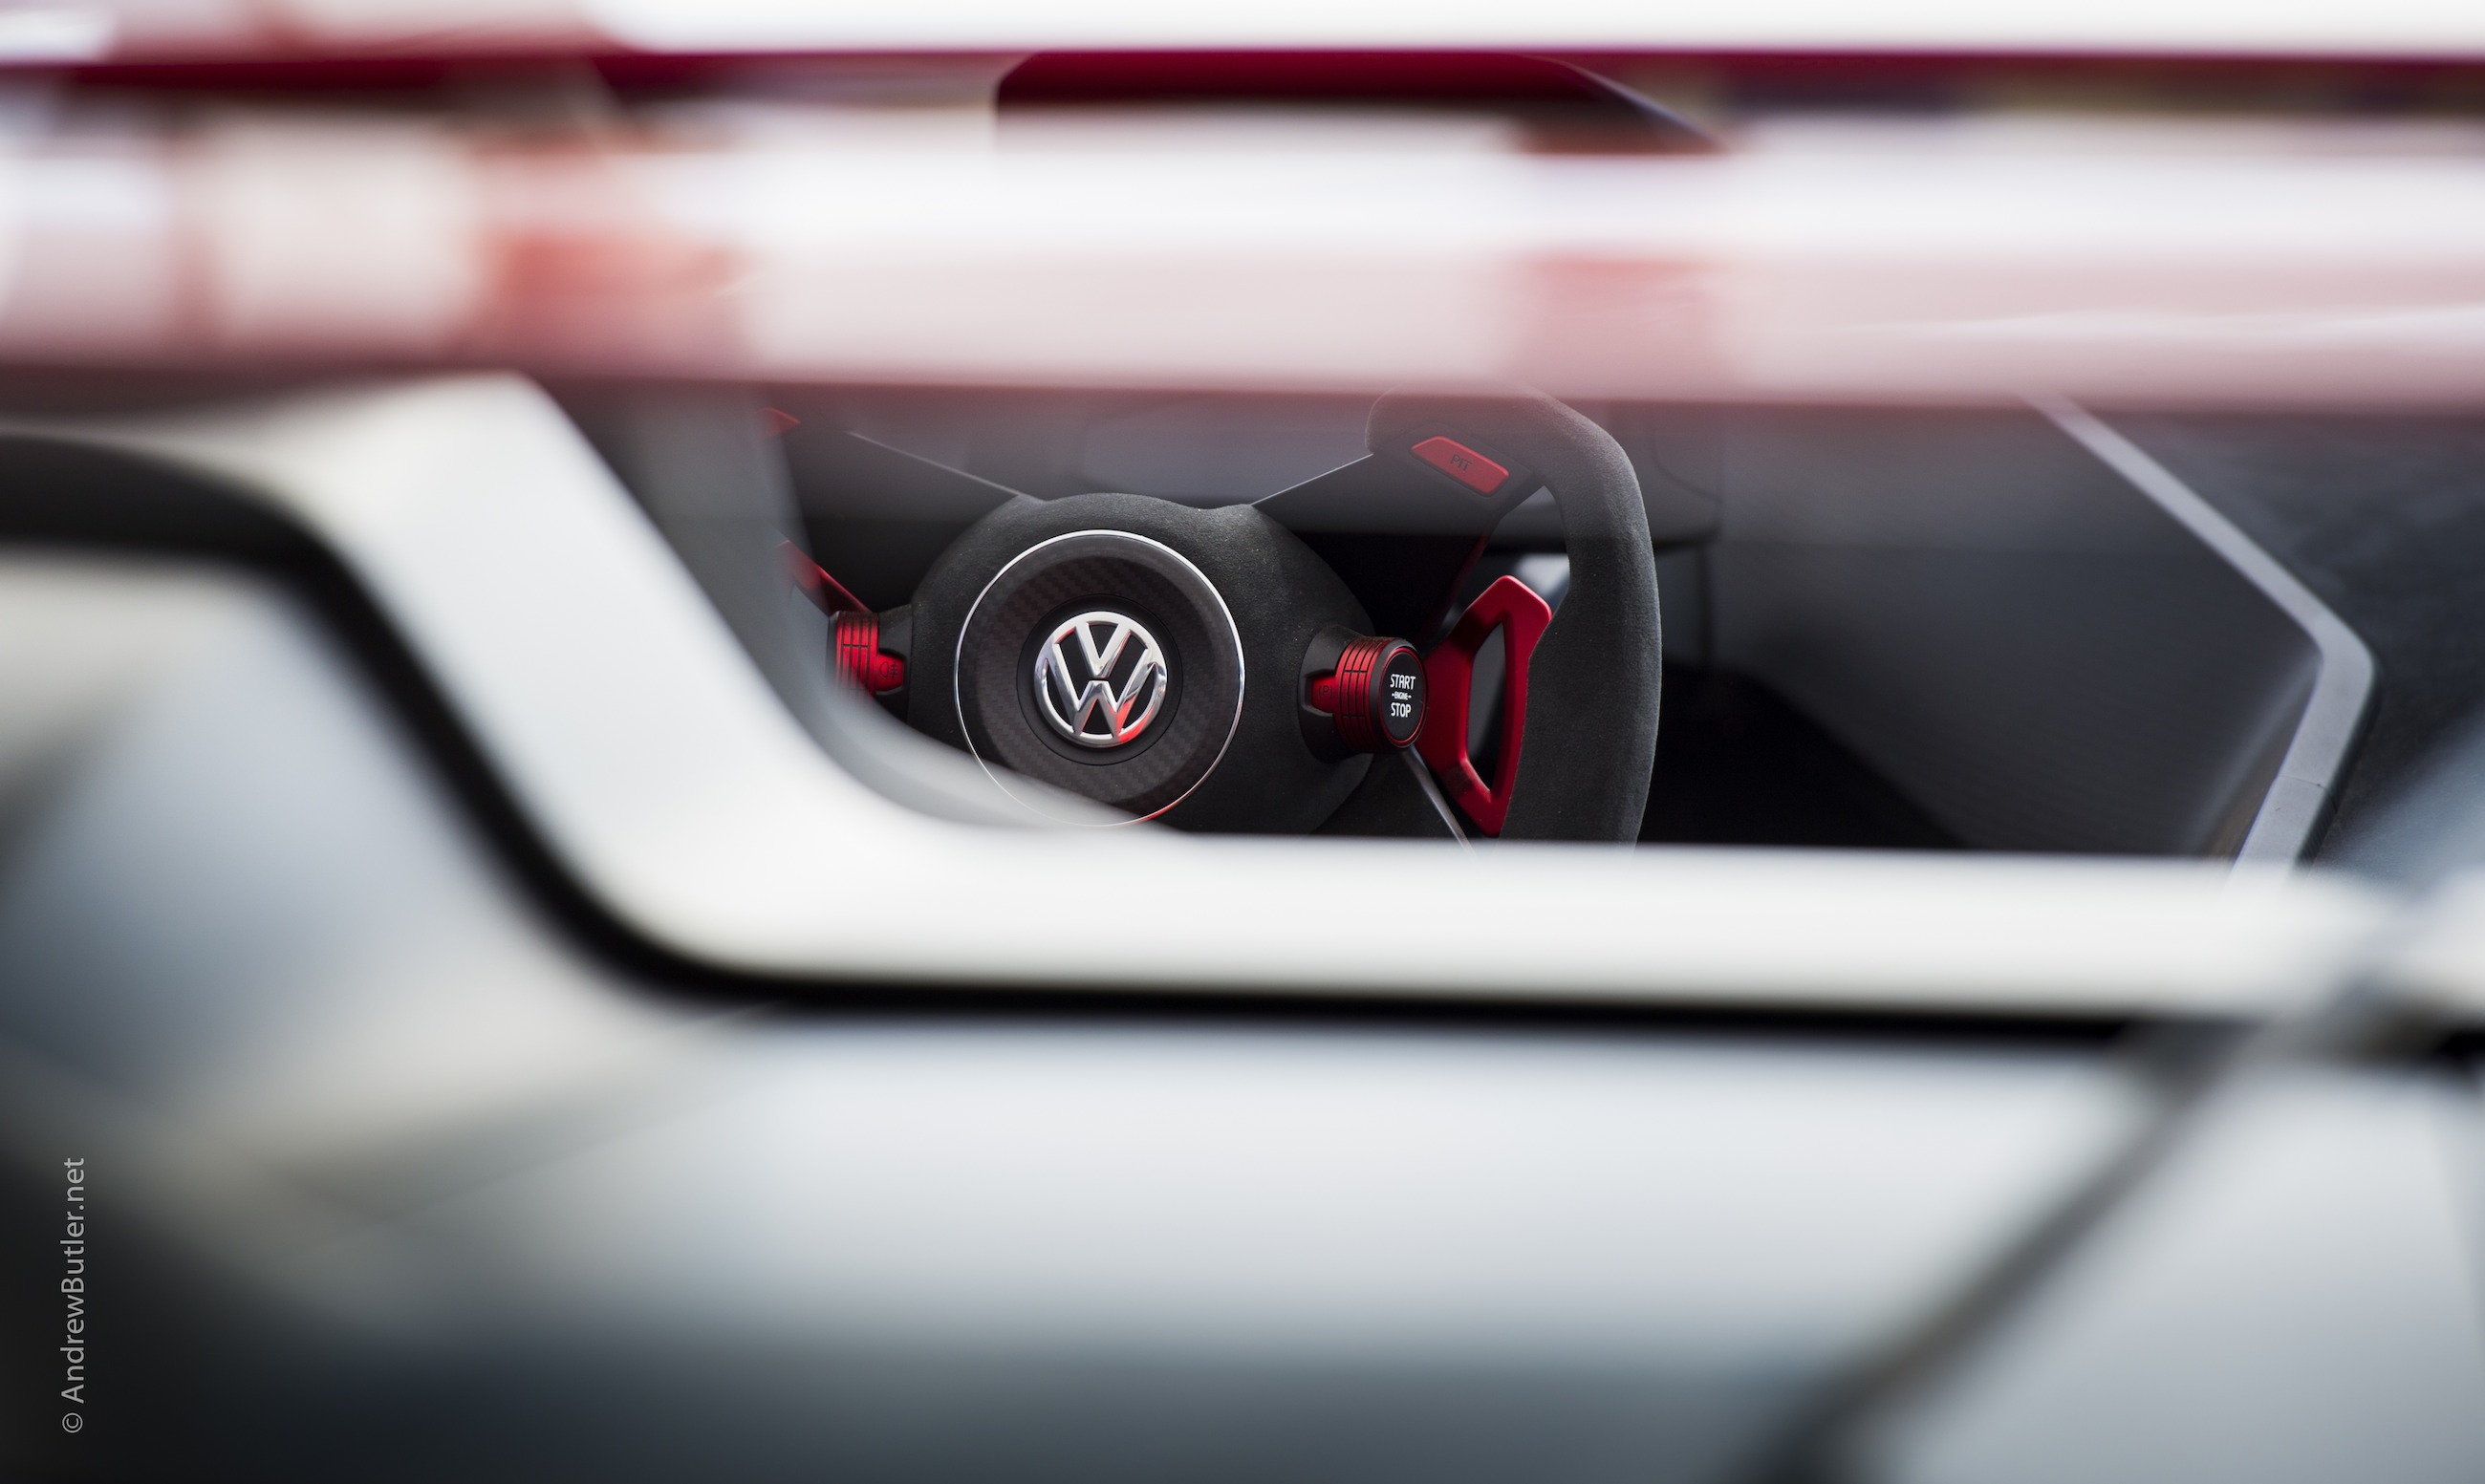 VW Concept Car Photography Goodwood by Andrew Butler Exeter Photographer Devon